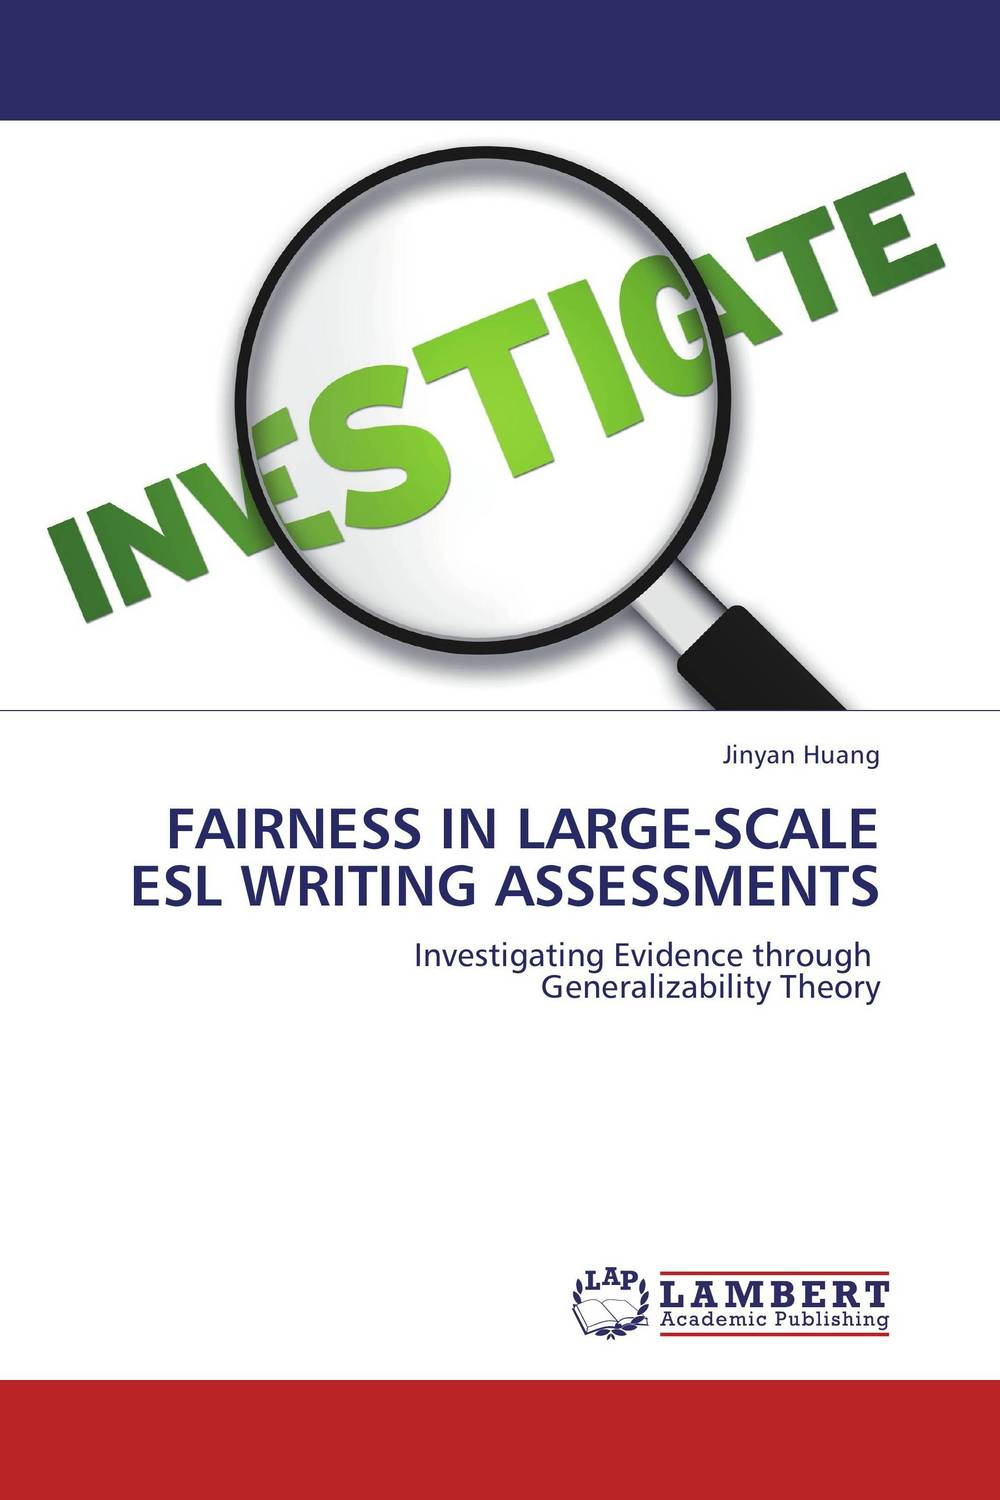 FAIRNESS IN LARGE-SCALE ESL WRITING ASSESSMENTS tlt beach party